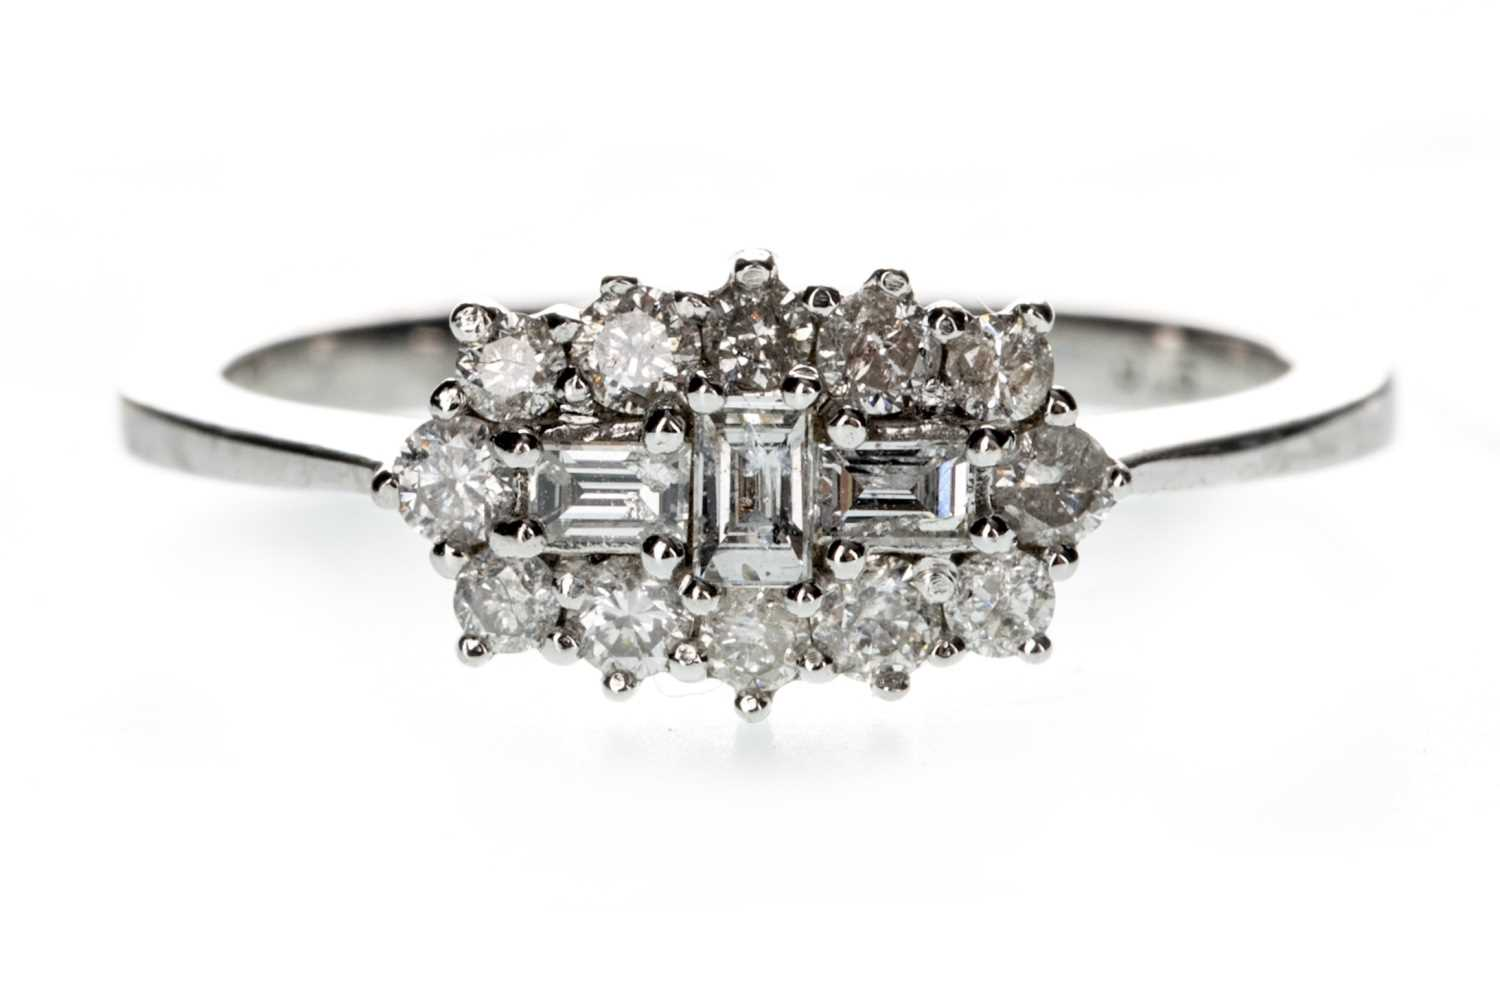 Lot 1314 - A DIAMOND CLUSTER RING